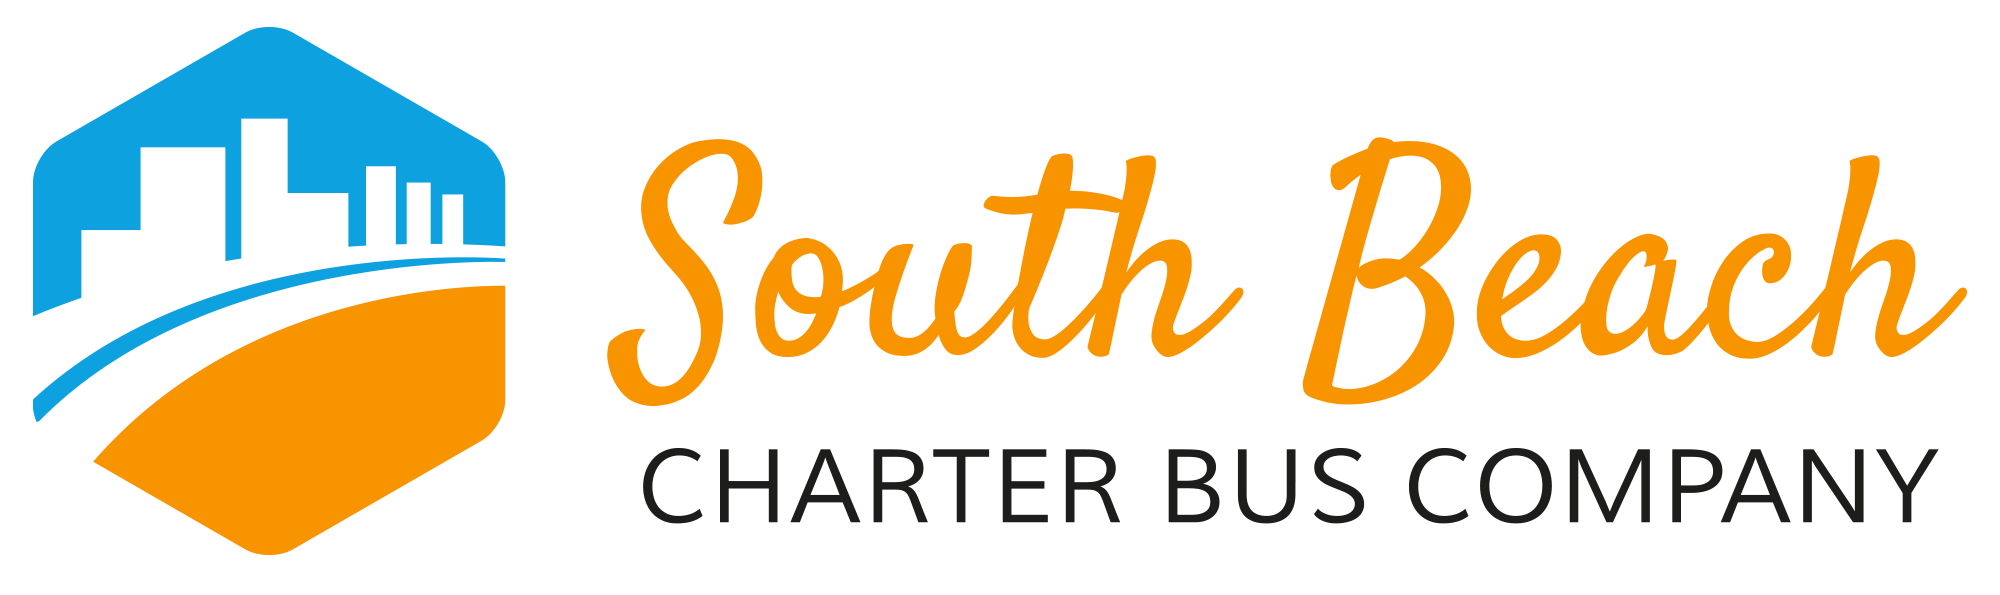 South Beach charter bus